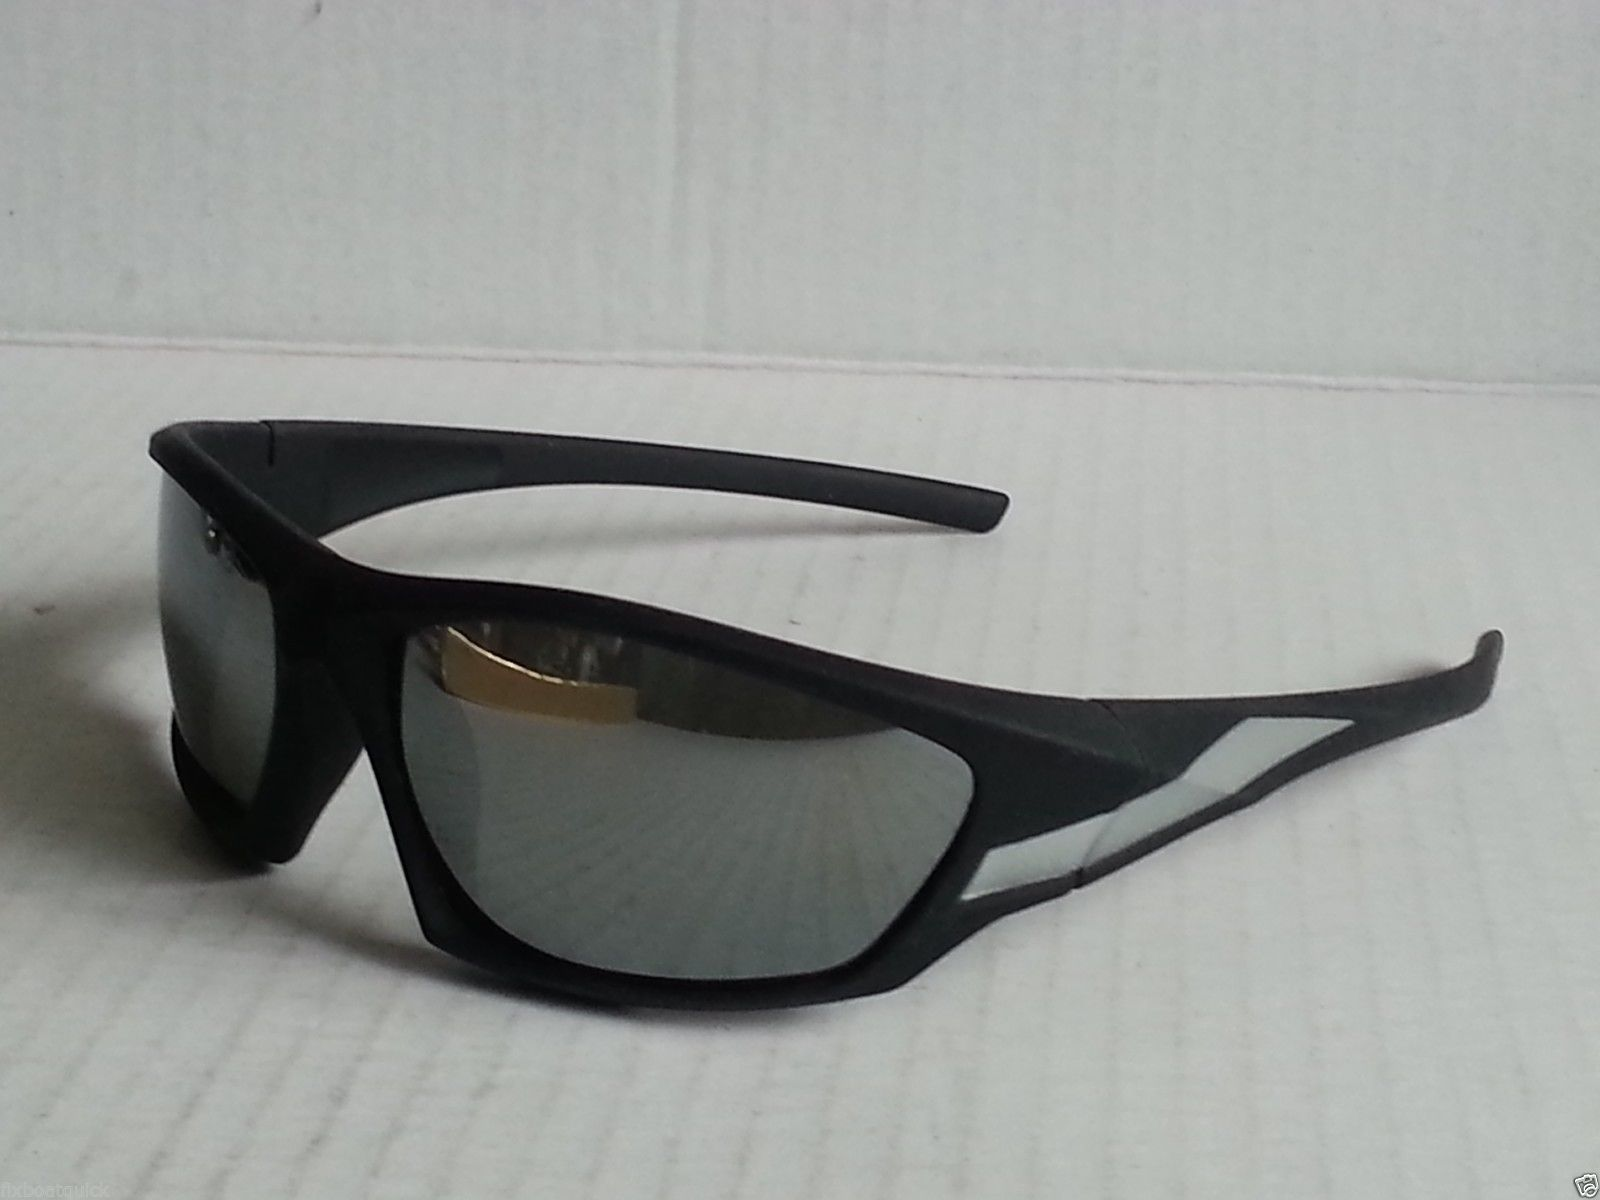 cdc53eface95c6  accessories Layer 8 sport sunglasses mirrored lenses black frame wrap  style (no tags)